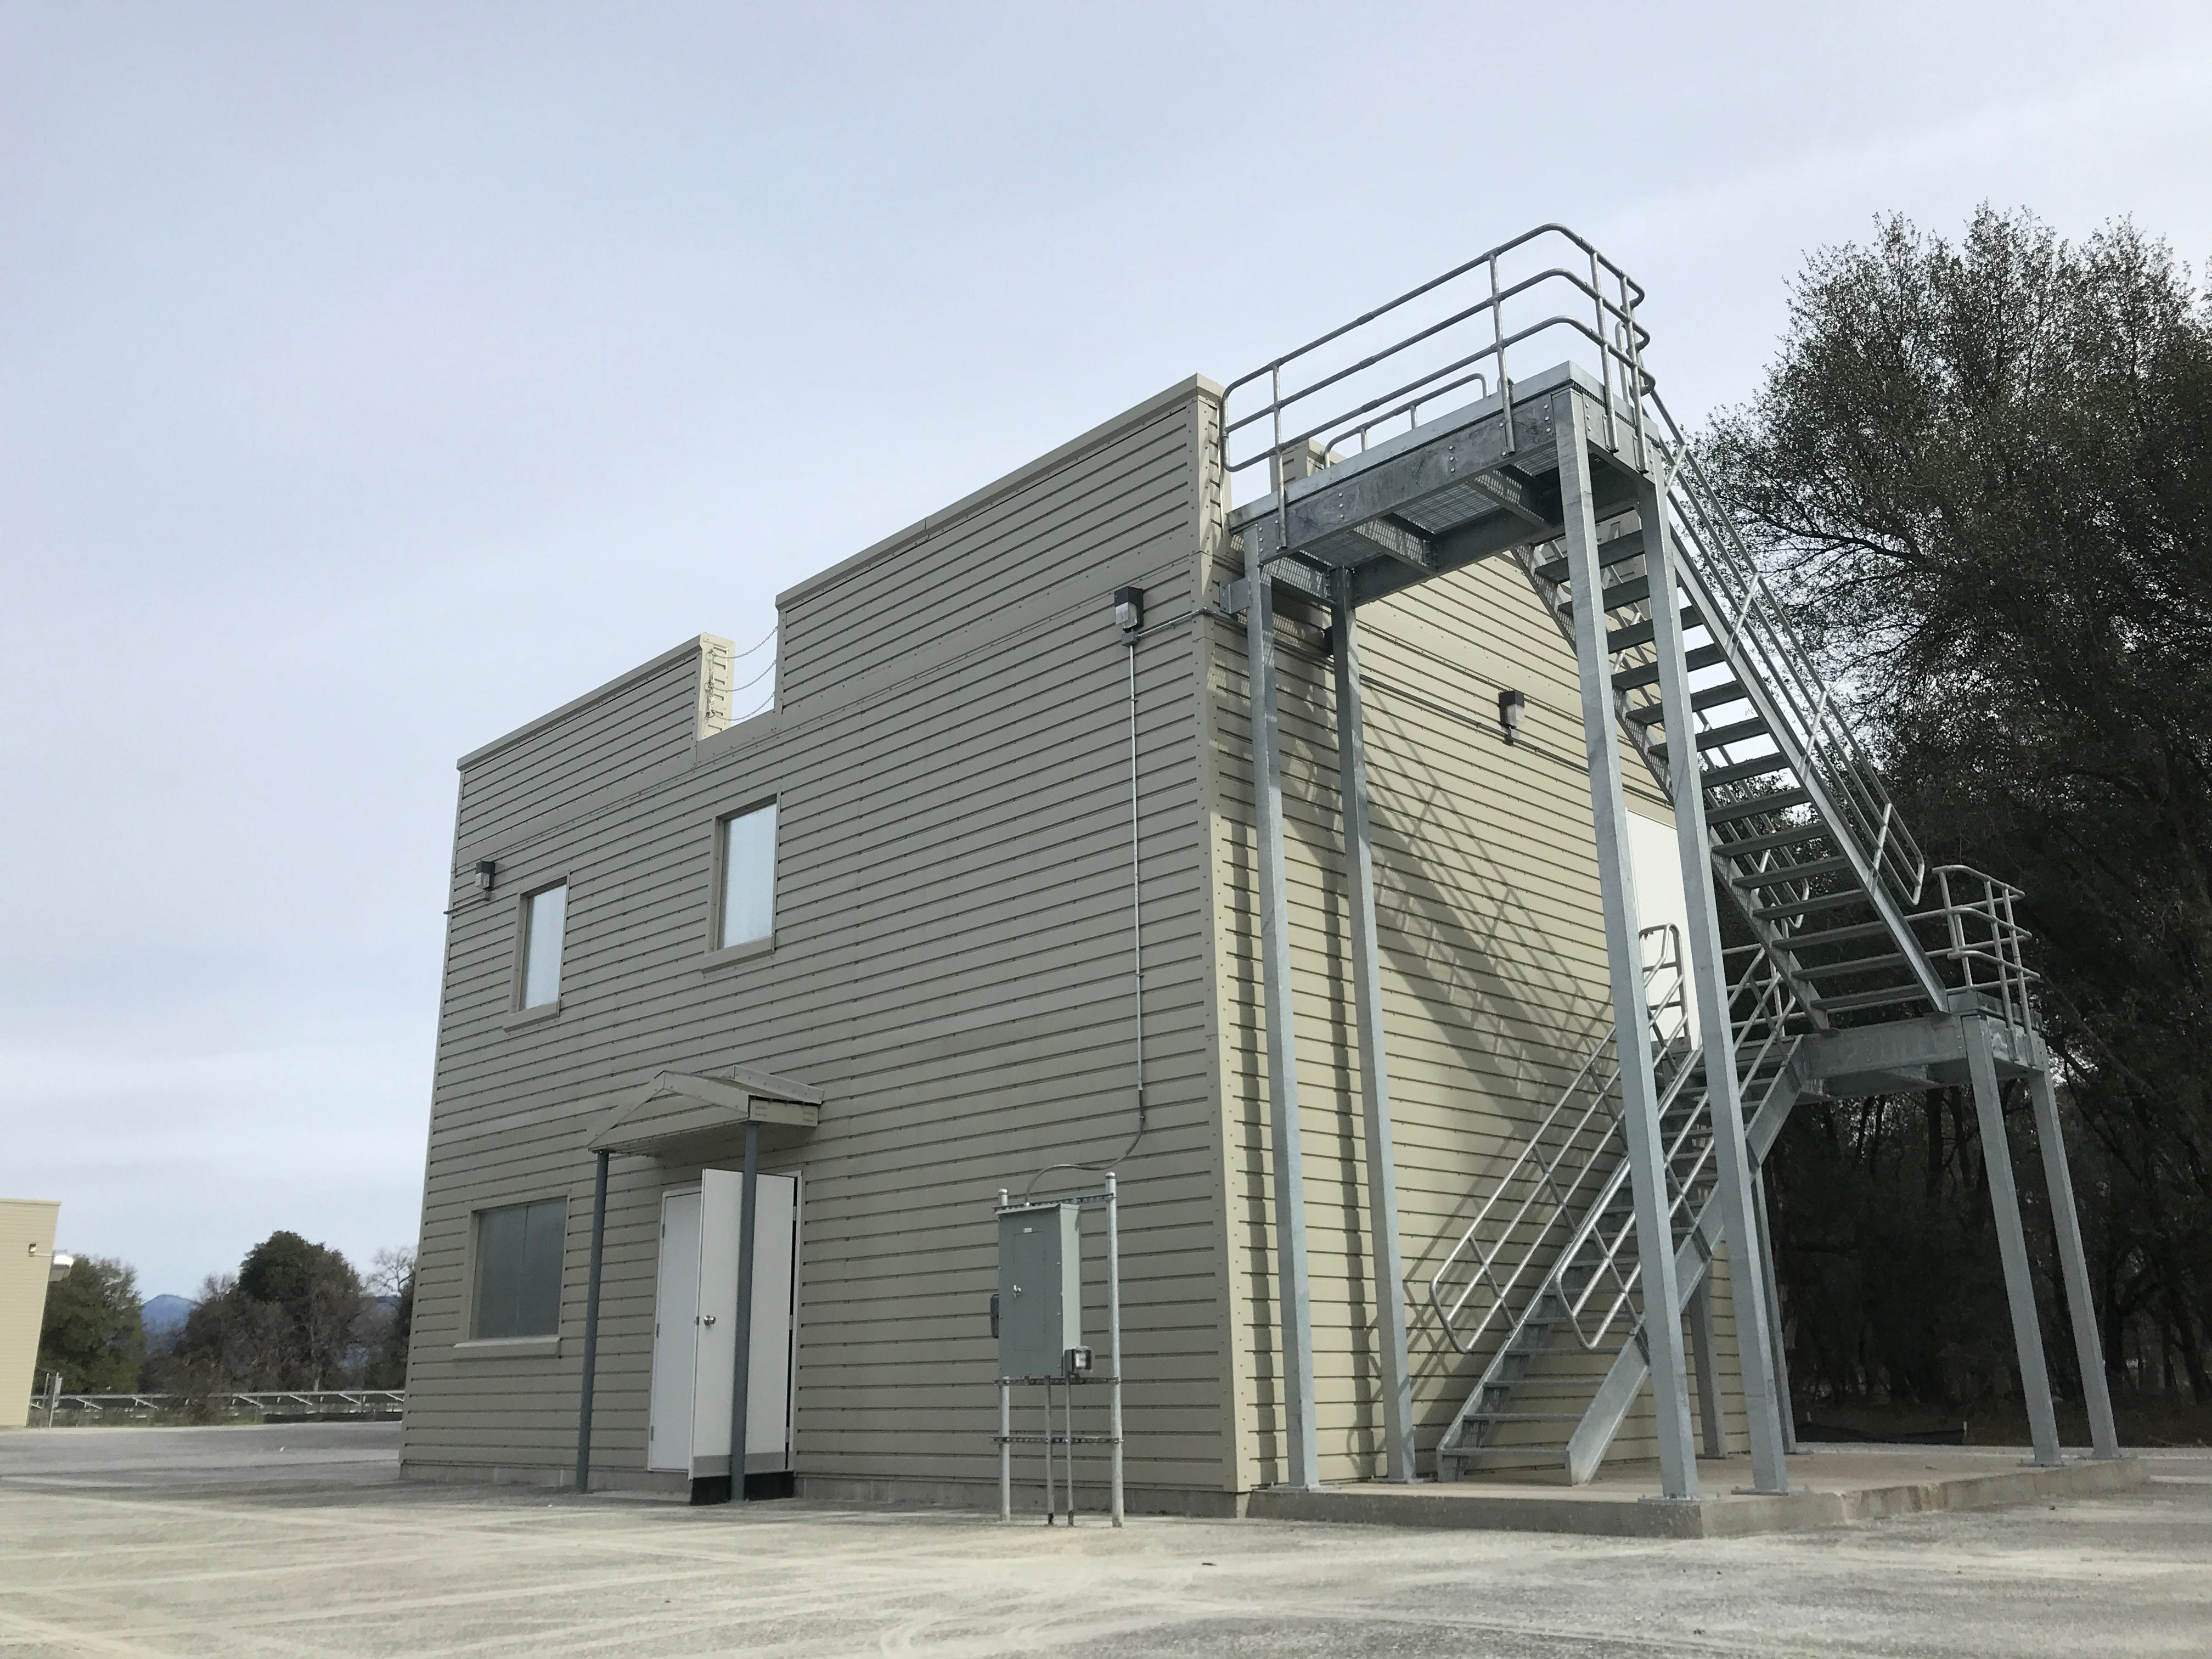 Shasta College fire academy is ready to open two new training towers.